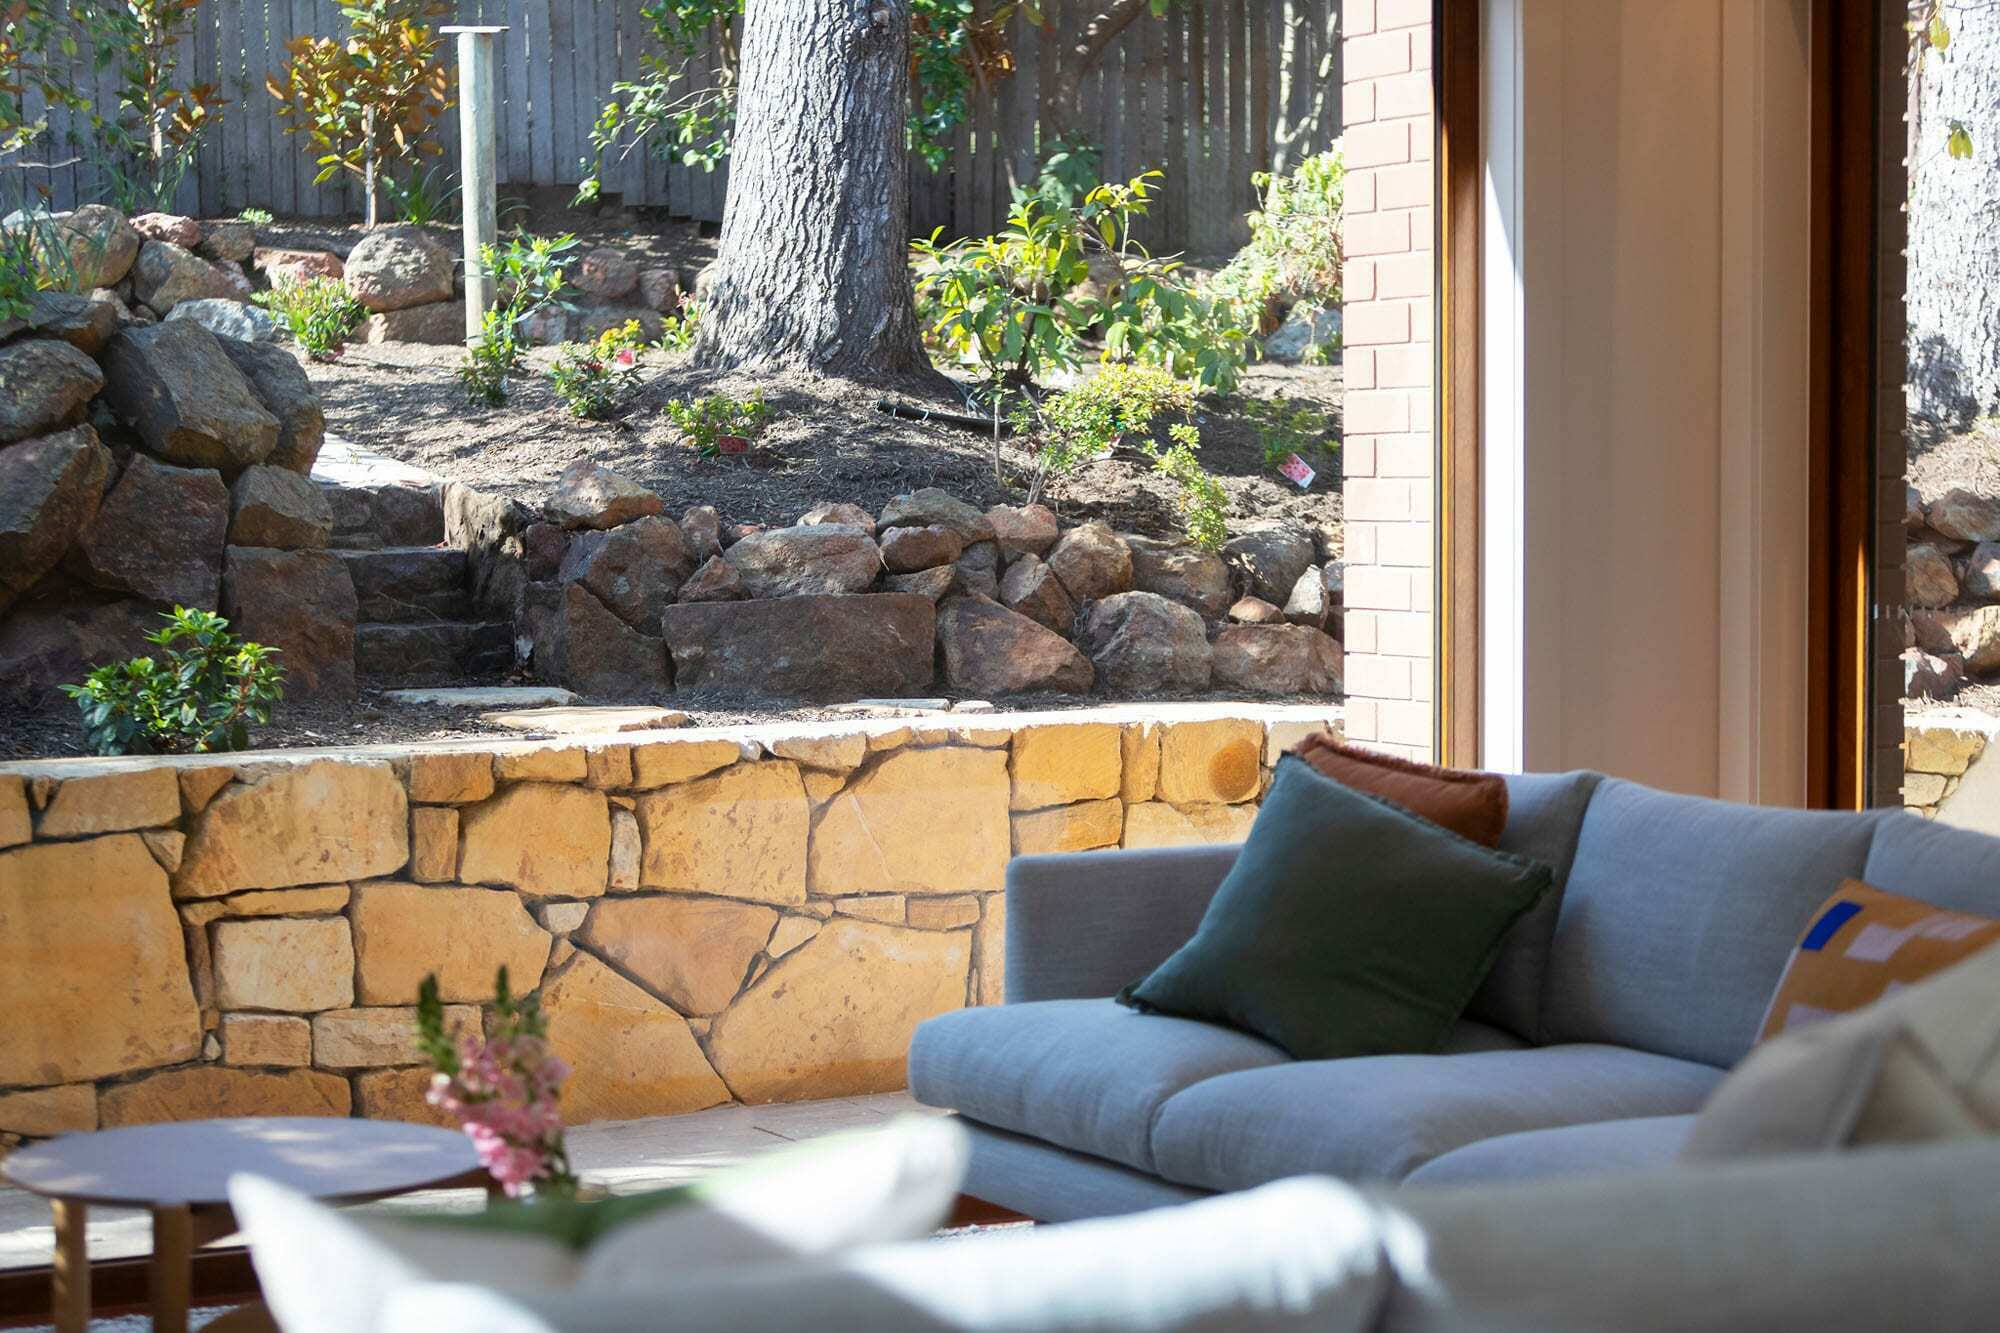 Homes by Howe Canberra builder – Governor Generals' renovation extension – Family room with stone retaining wall